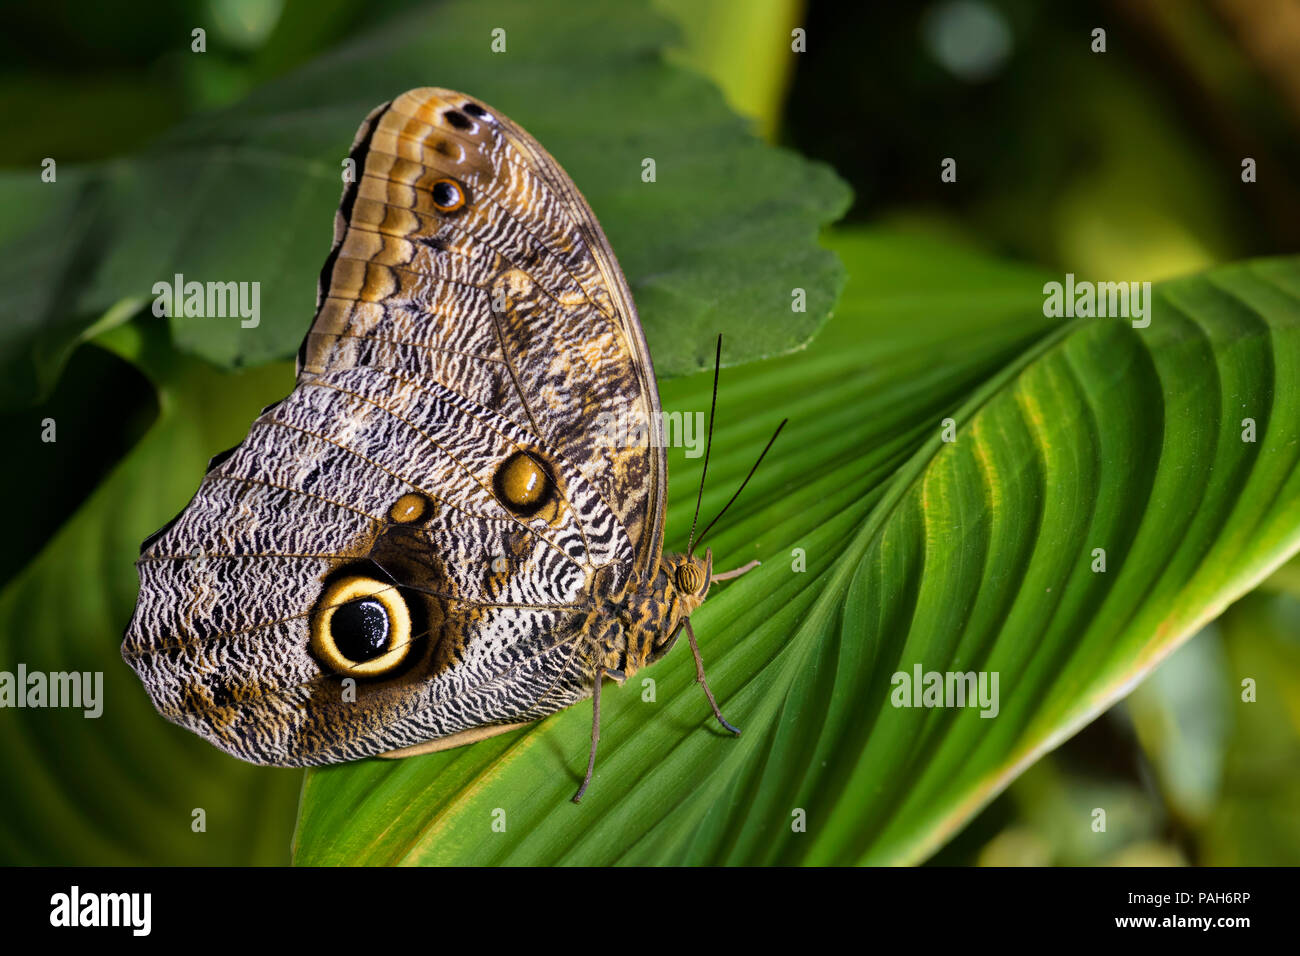 Giant owl butterfly  - Caligo memnon, beautiful large butterfly from Central America forests. - Stock Image